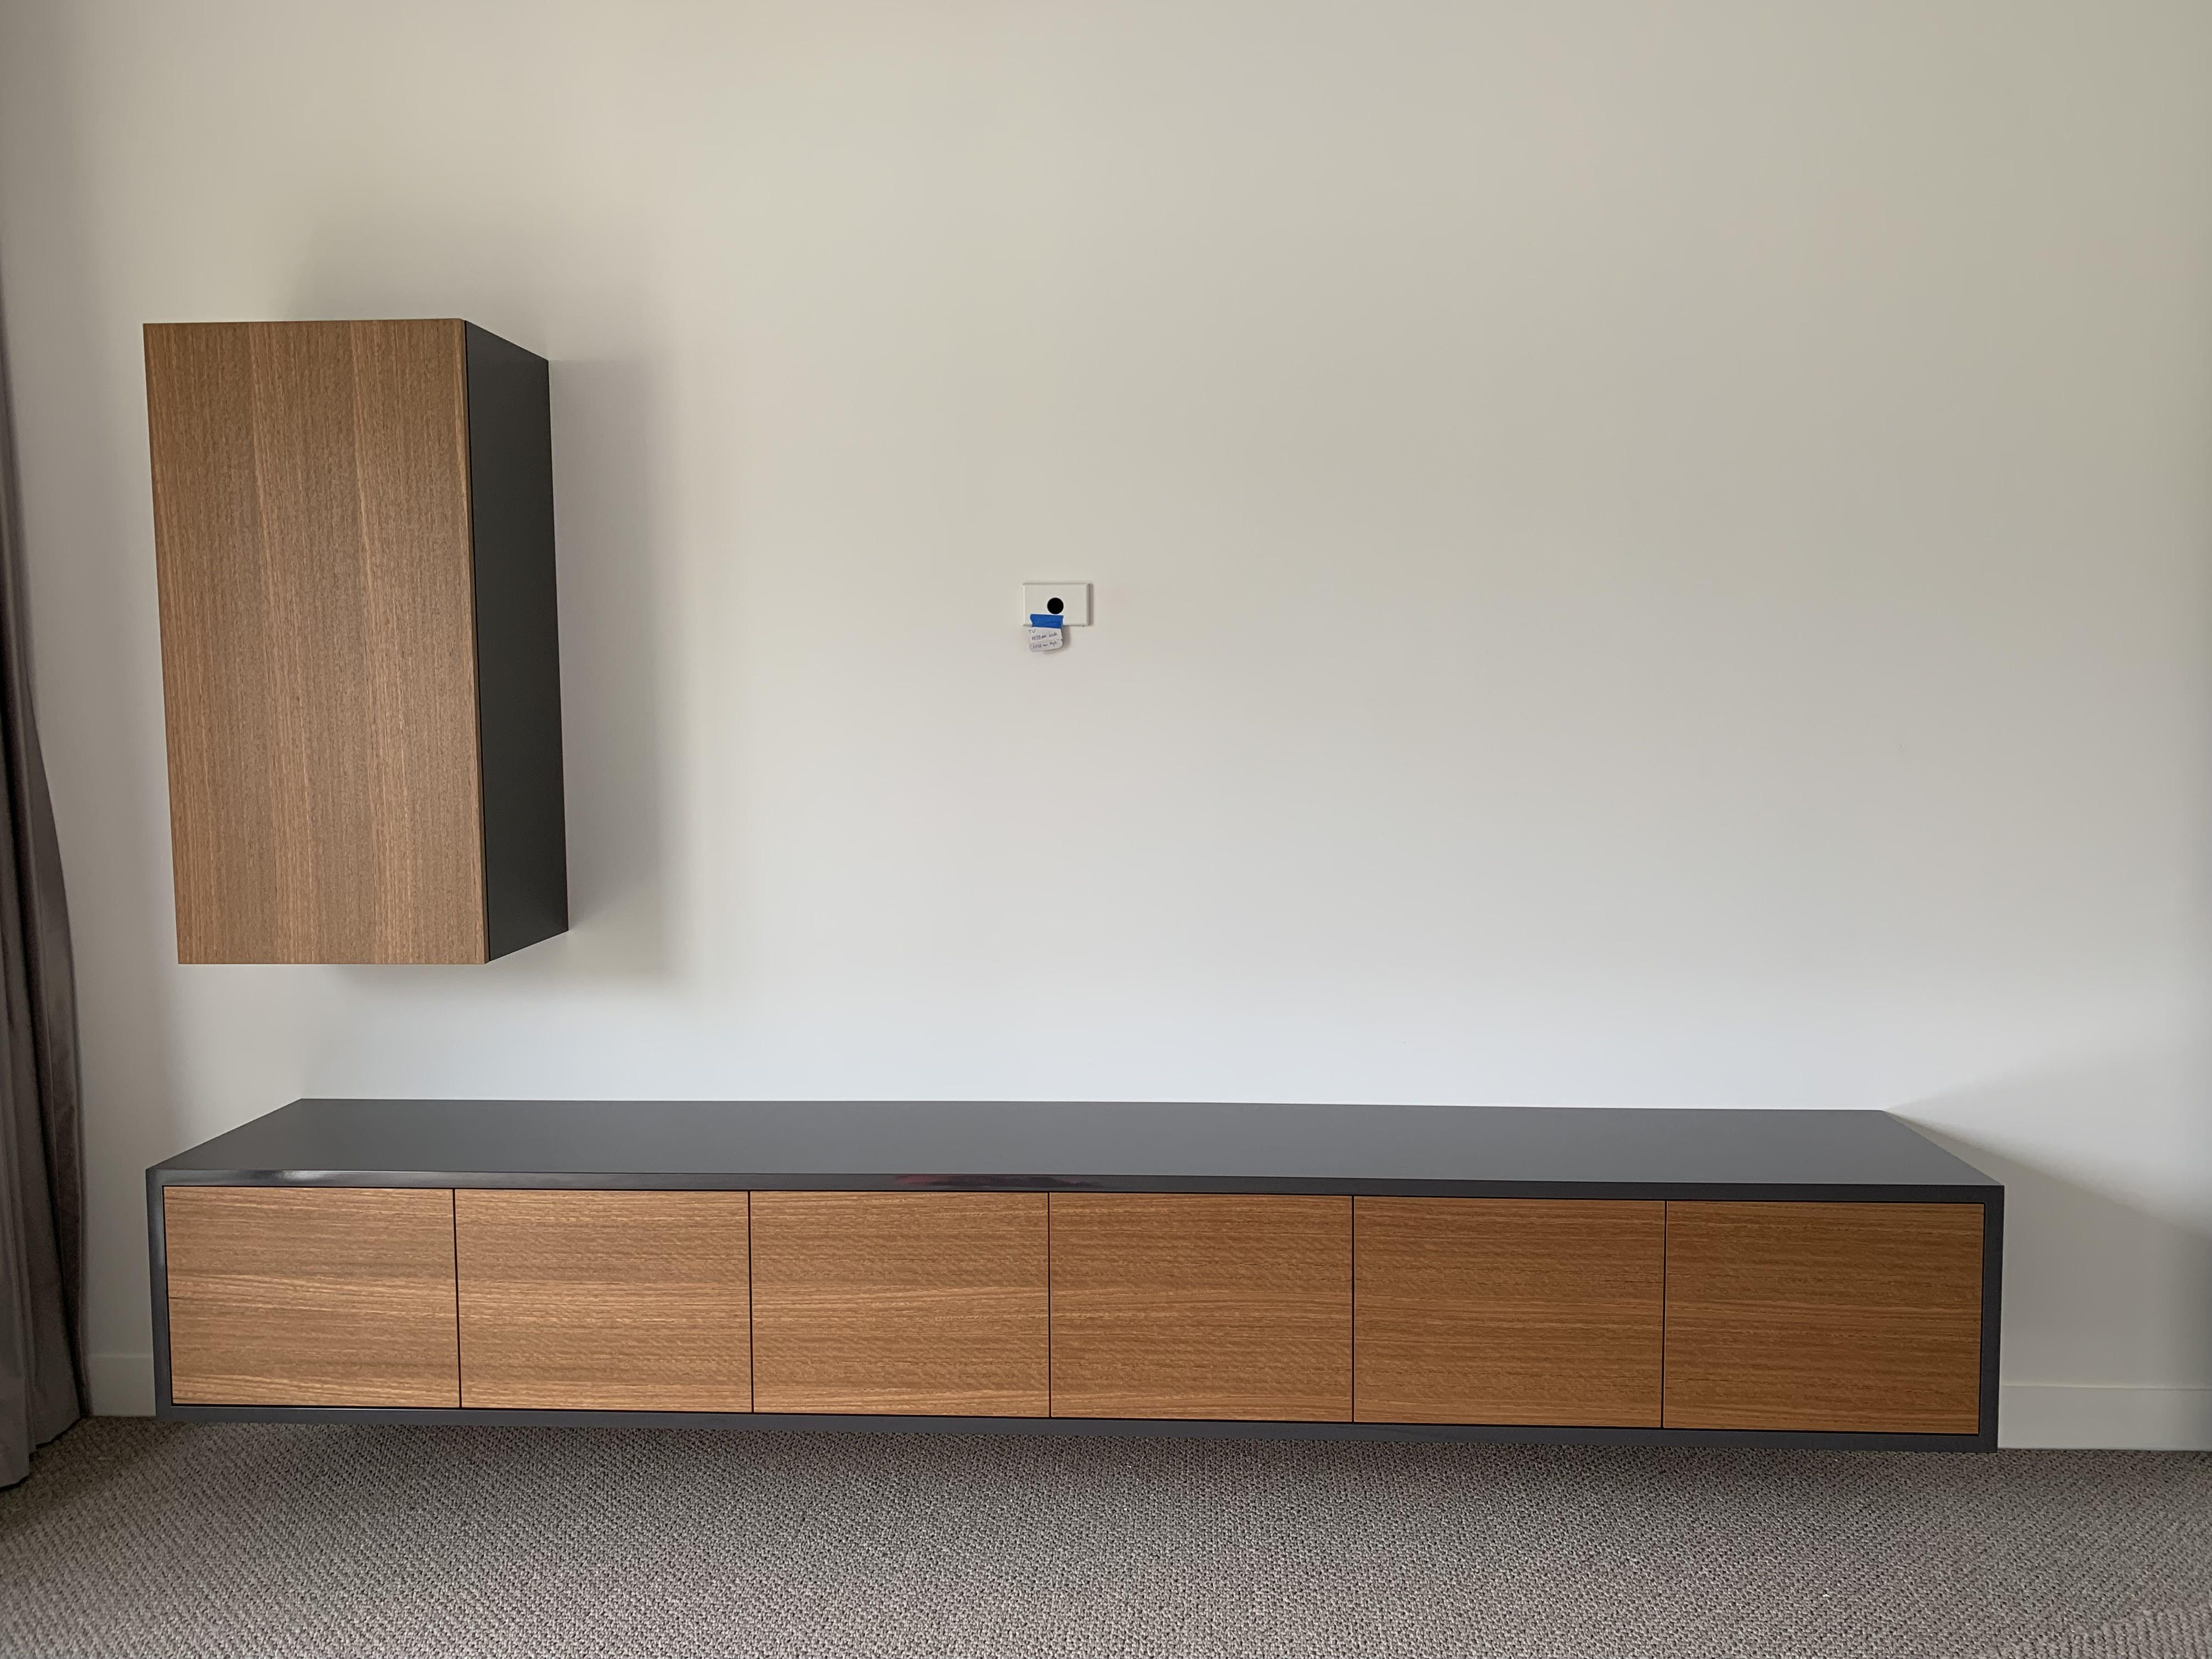 Custom Cabinet Designed And Made In Perth By Lifestyle Furniture